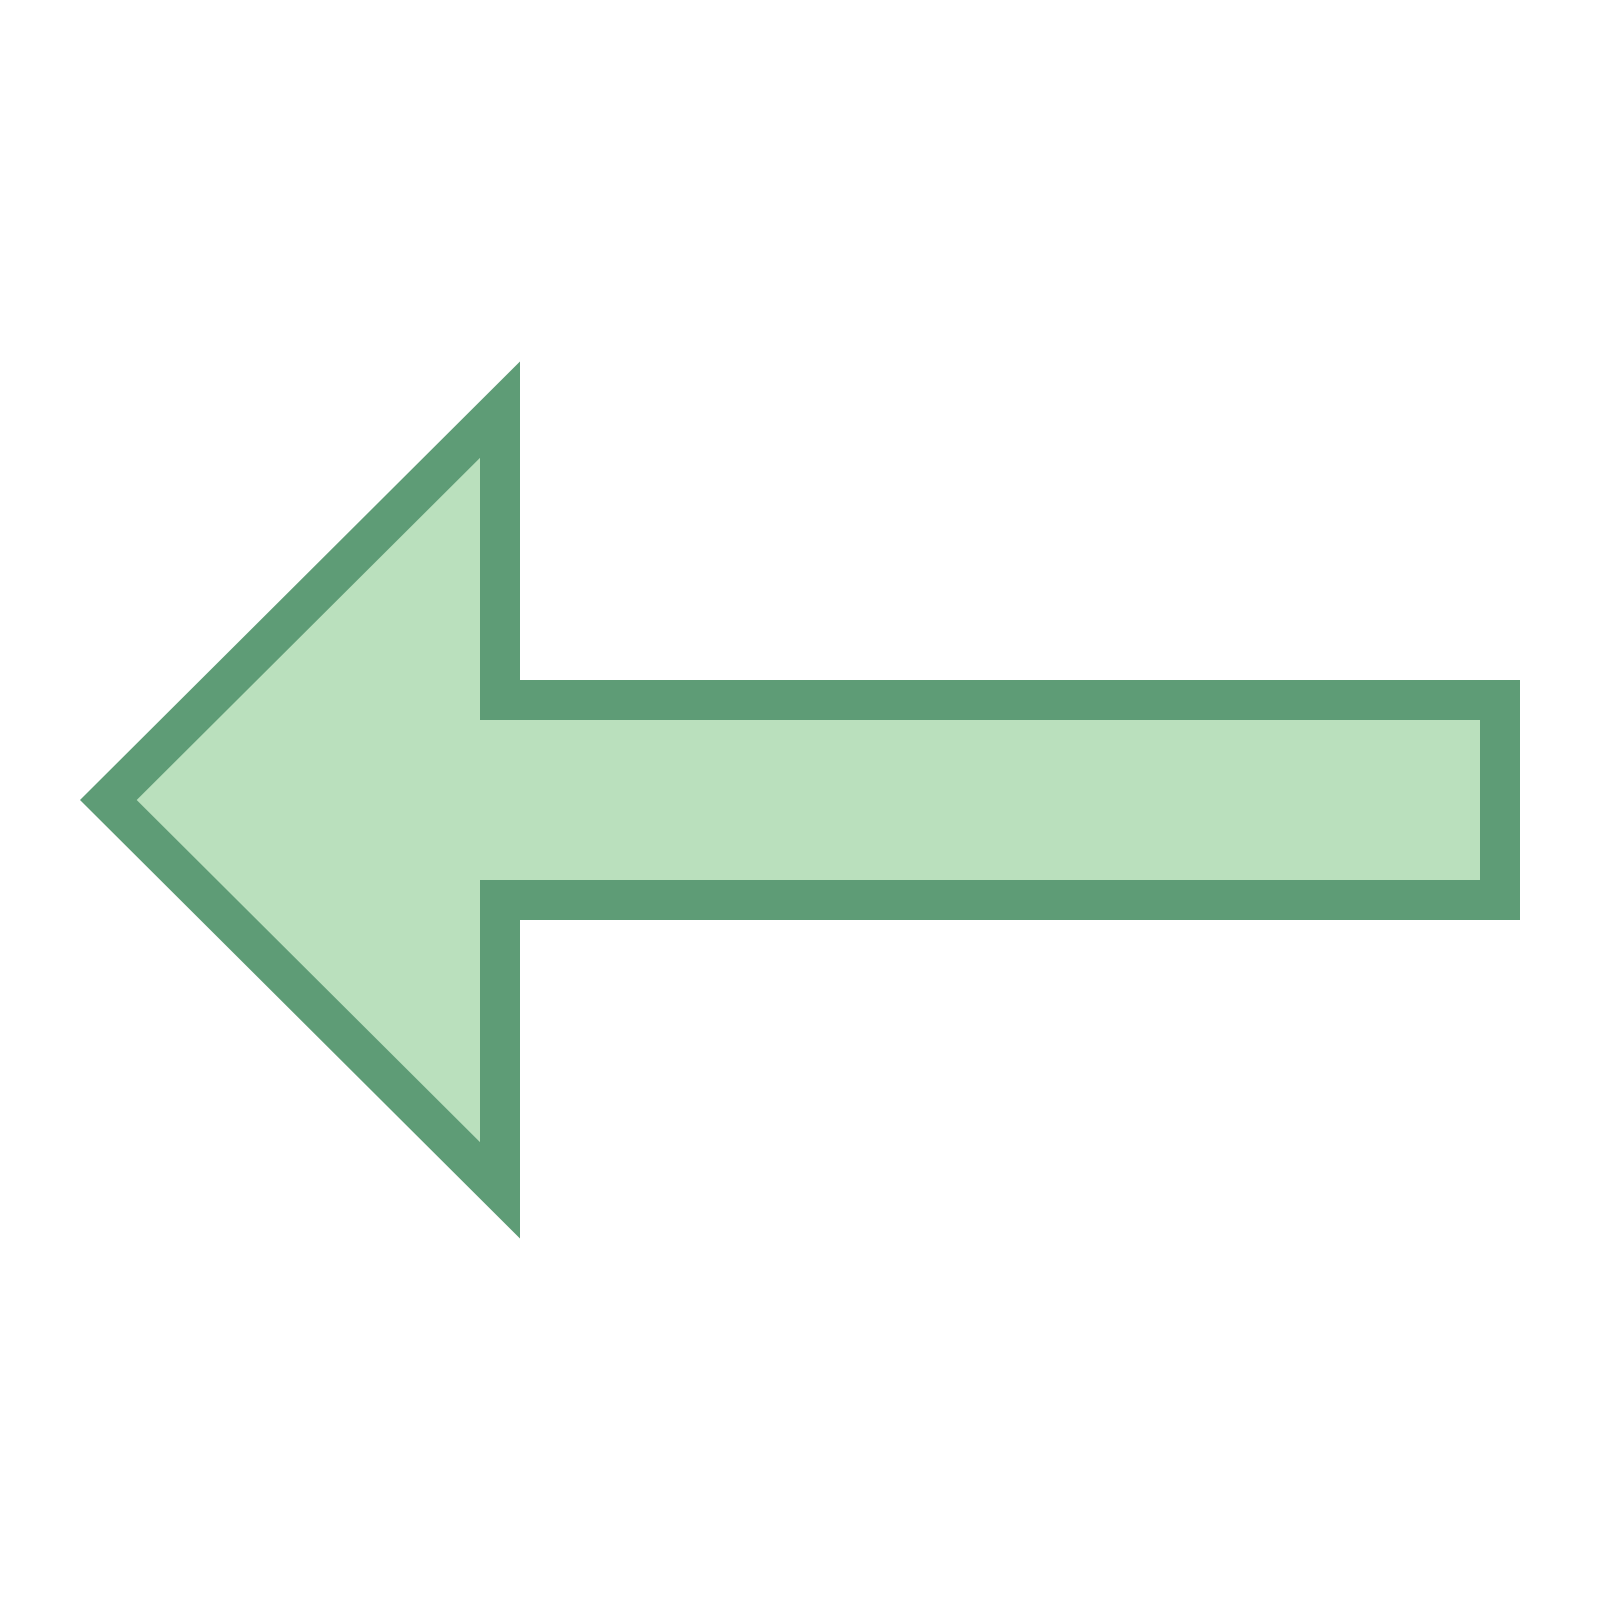 Arrow to the left picture freeuse Arrows Icons - Free Download at Icons8 picture freeuse